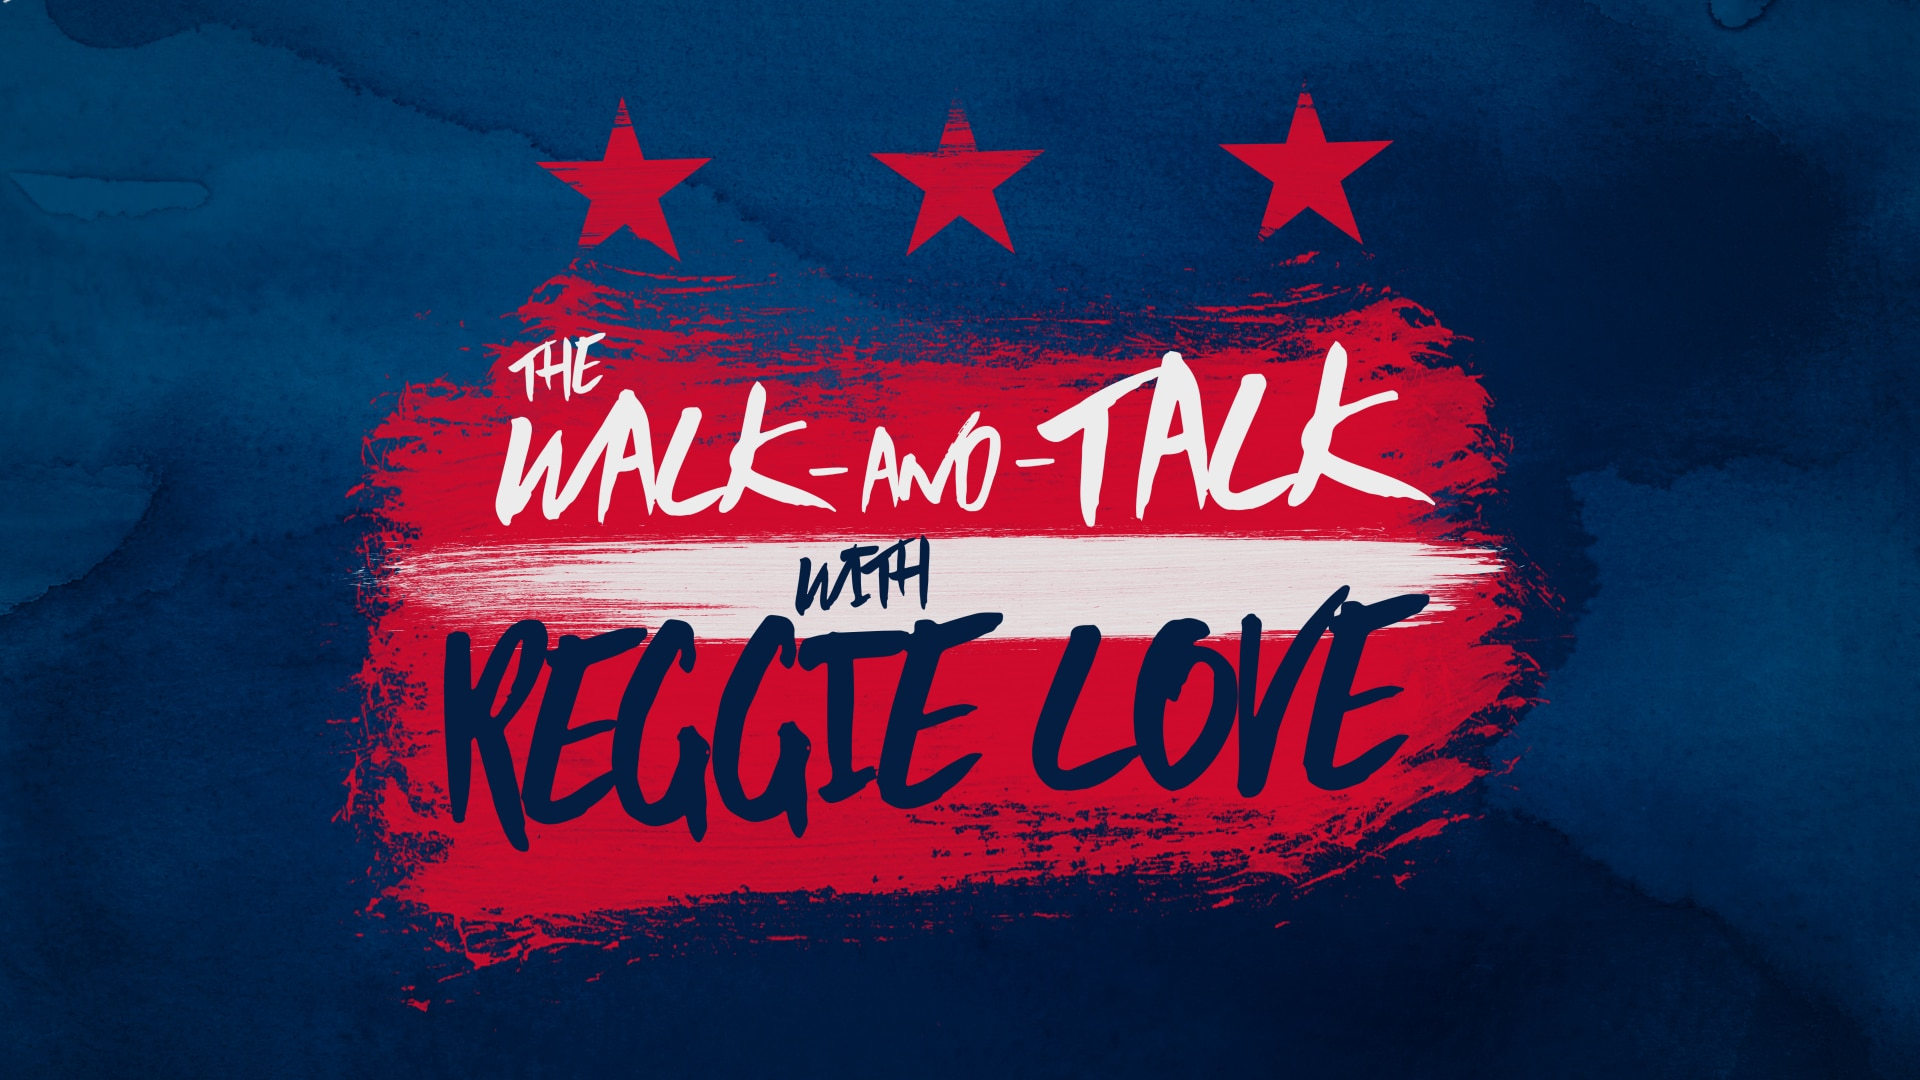 Image of Trailer: The Walk-and-Talk with Reggie Love